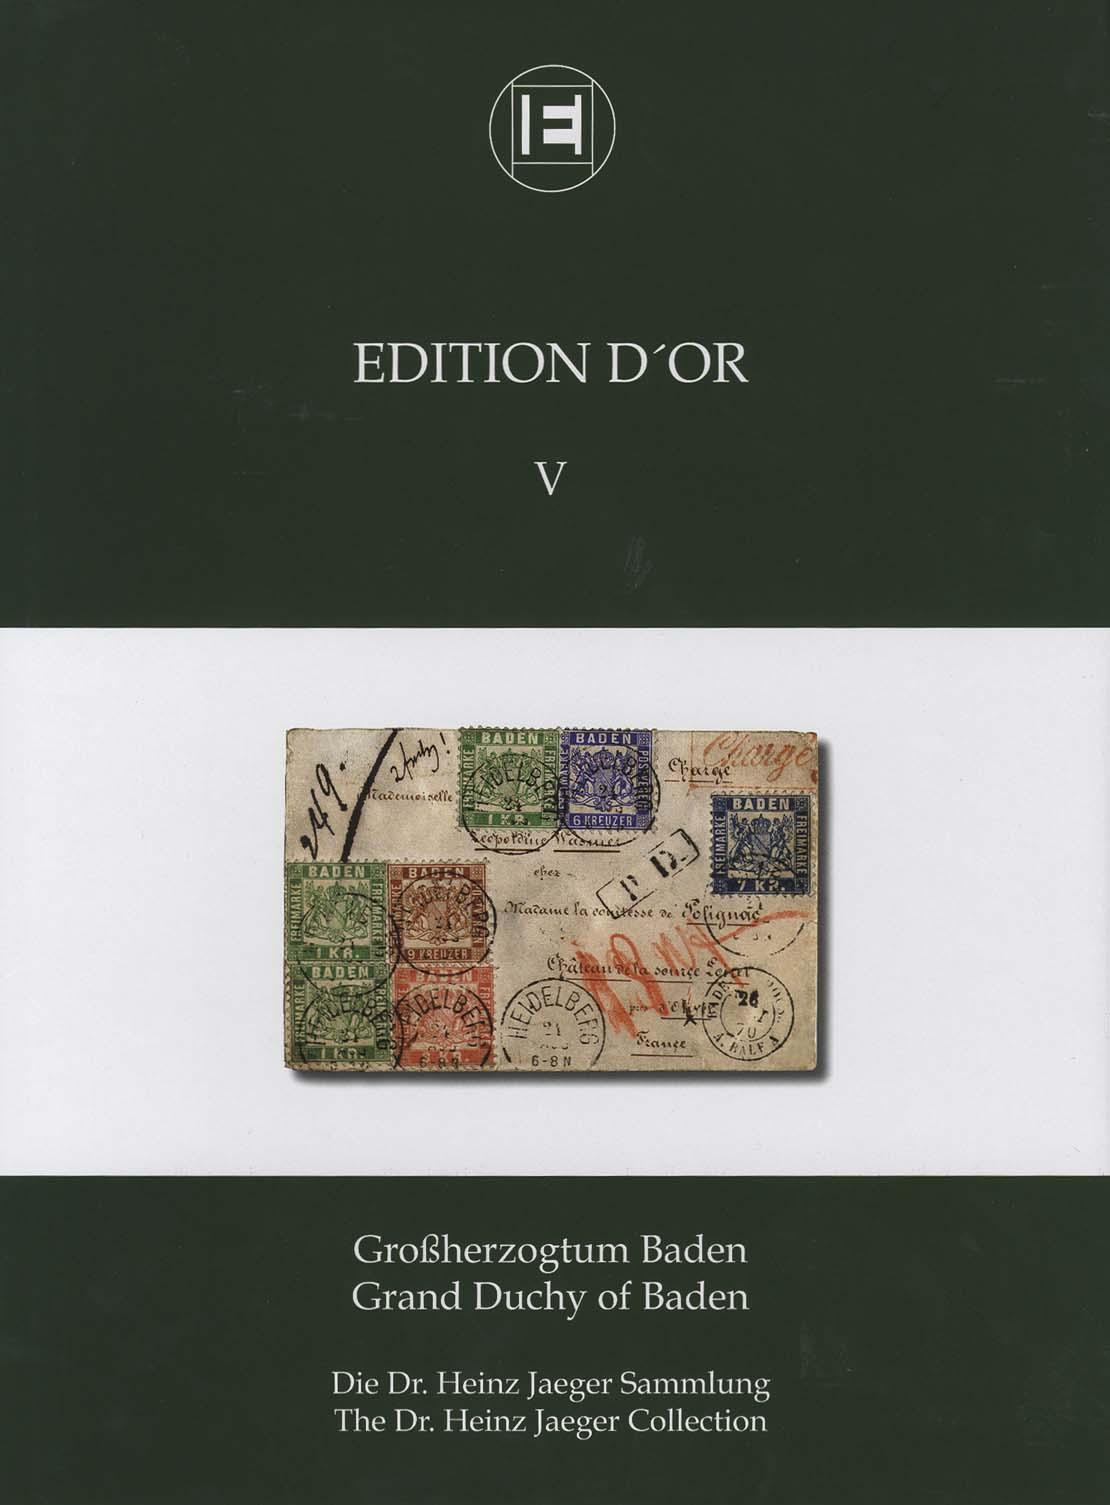 Vol. 5: Grand Duchy of Baden • The Dr. Heinz Jaeger Collection